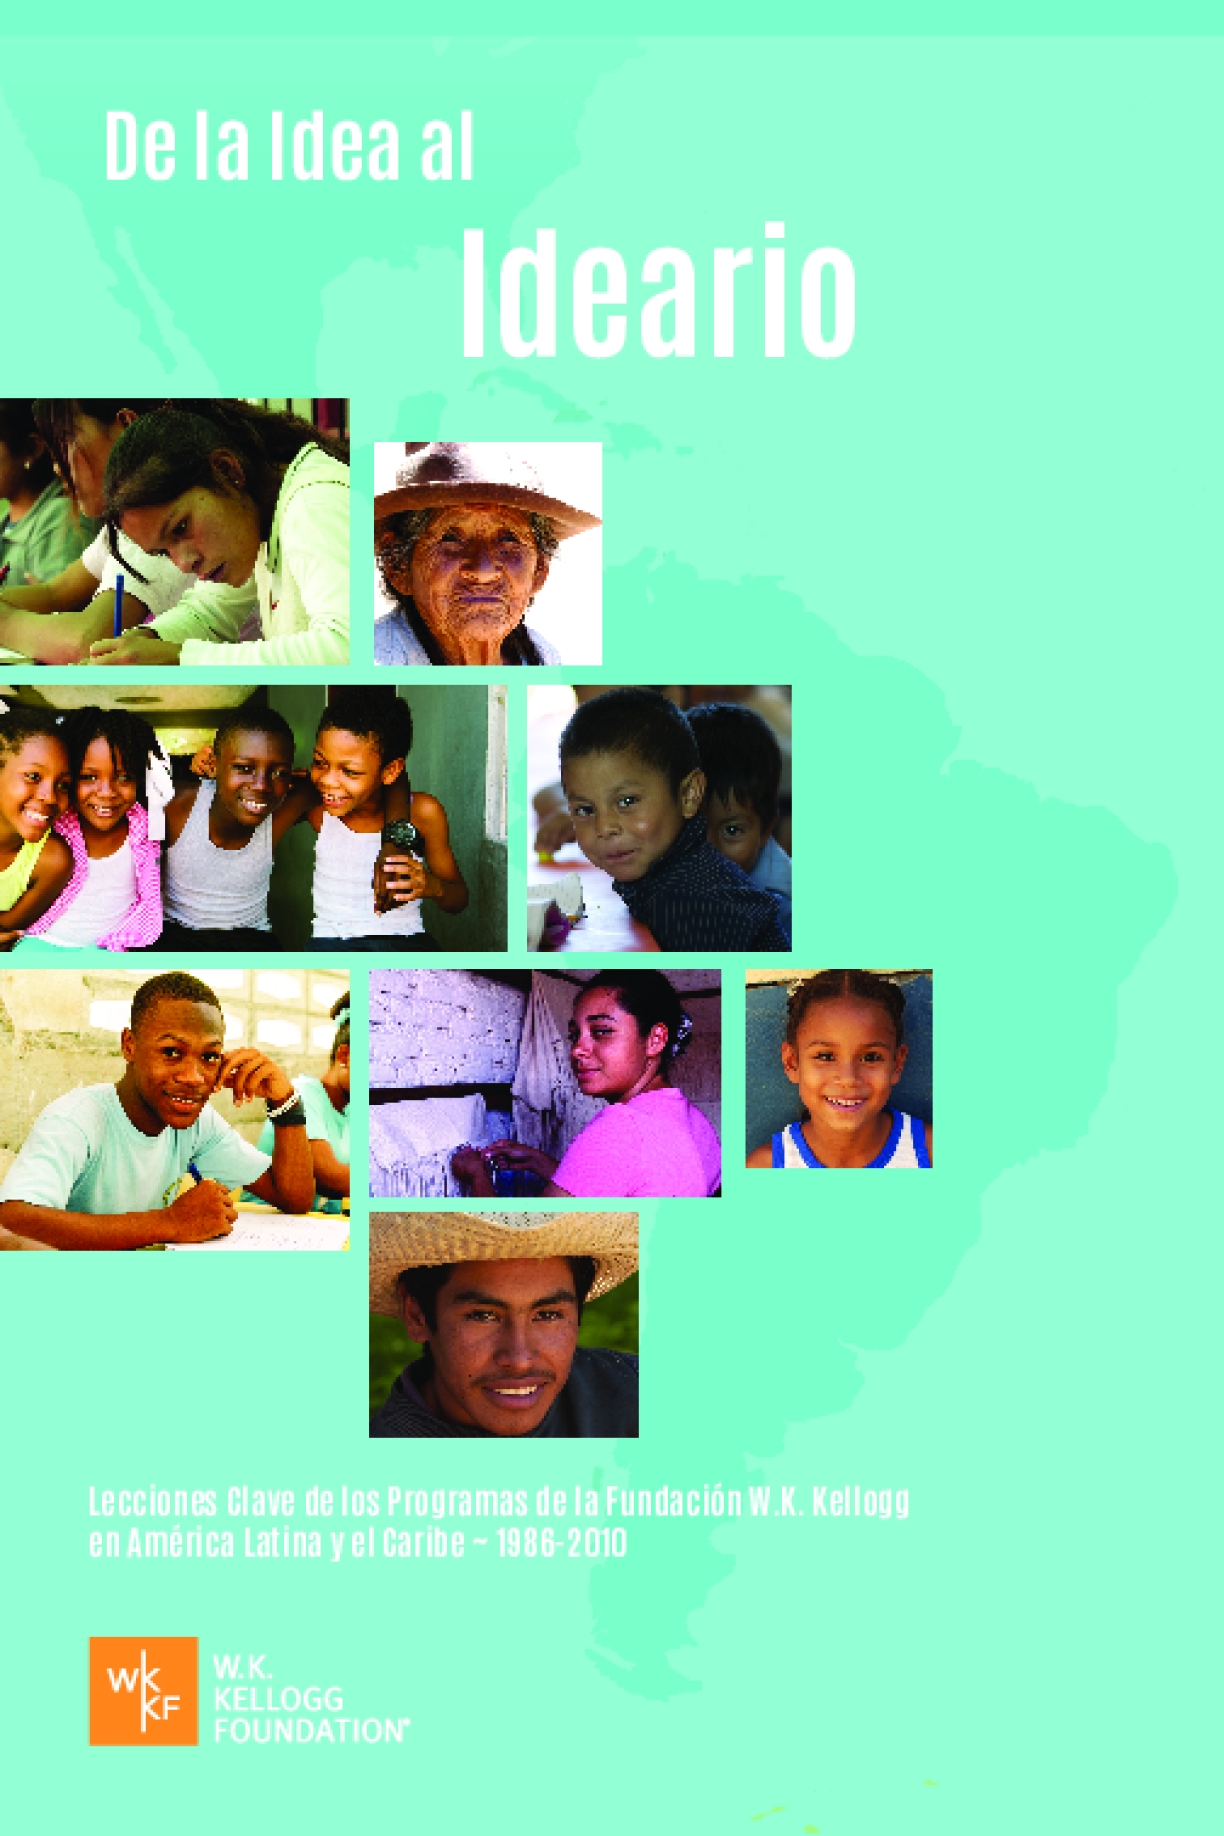 Learnings and Legacies from the Field: The W.K. Kellogg Foundation's legacy of opportunity, racial equity and civic renewal in Latin America and the Caribbean from 1986 - 2010 (Companion Summary) Spanish